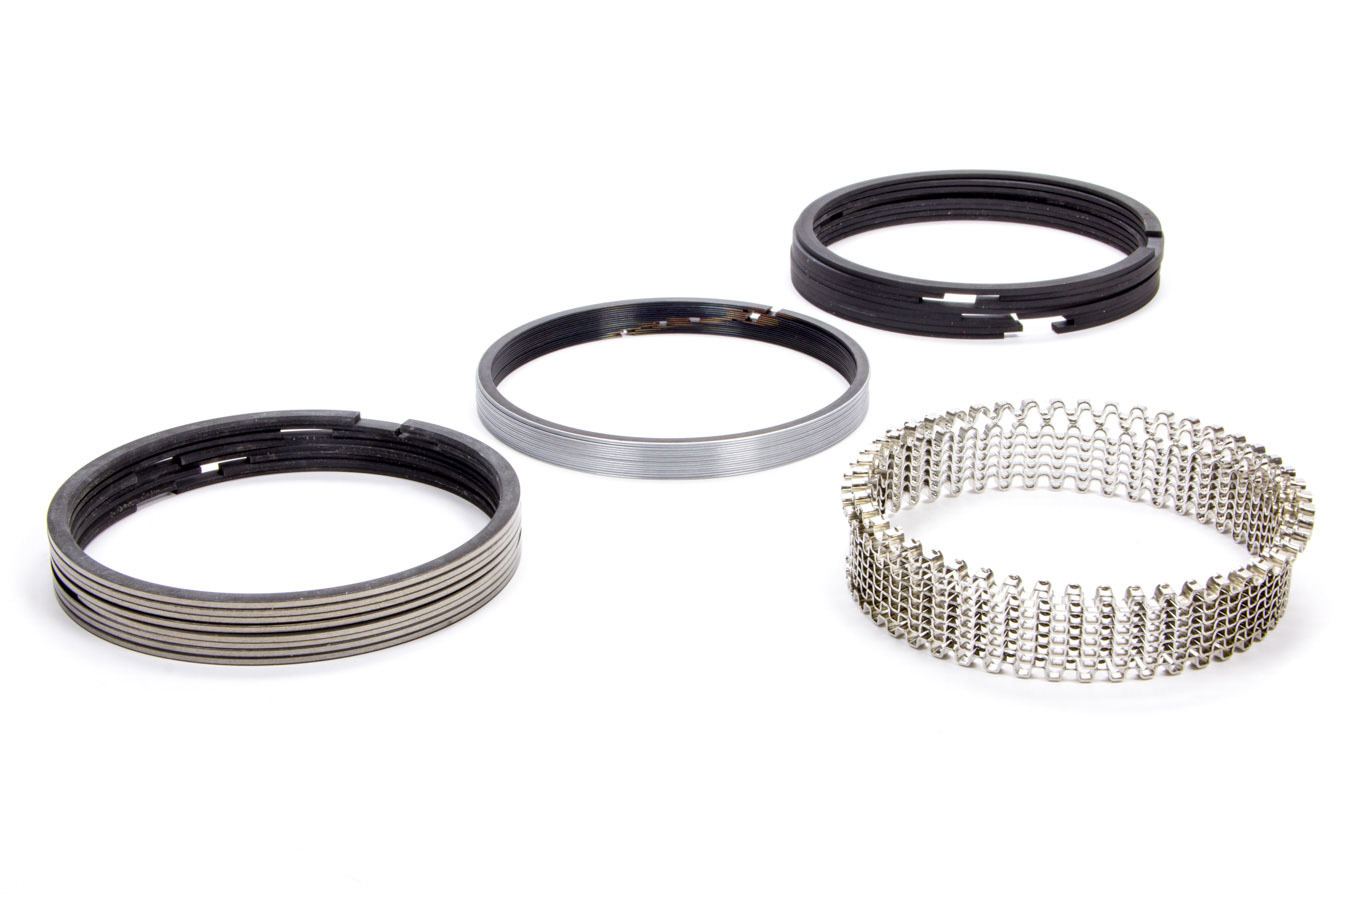 Hastings CM5534030 Piston Rings, Claimer, 4.155 in Bore, 1/16 x 1/16 x 3/16 in Thick, Standard Tension, Plasma Moly, 8 Cylinder, Kit